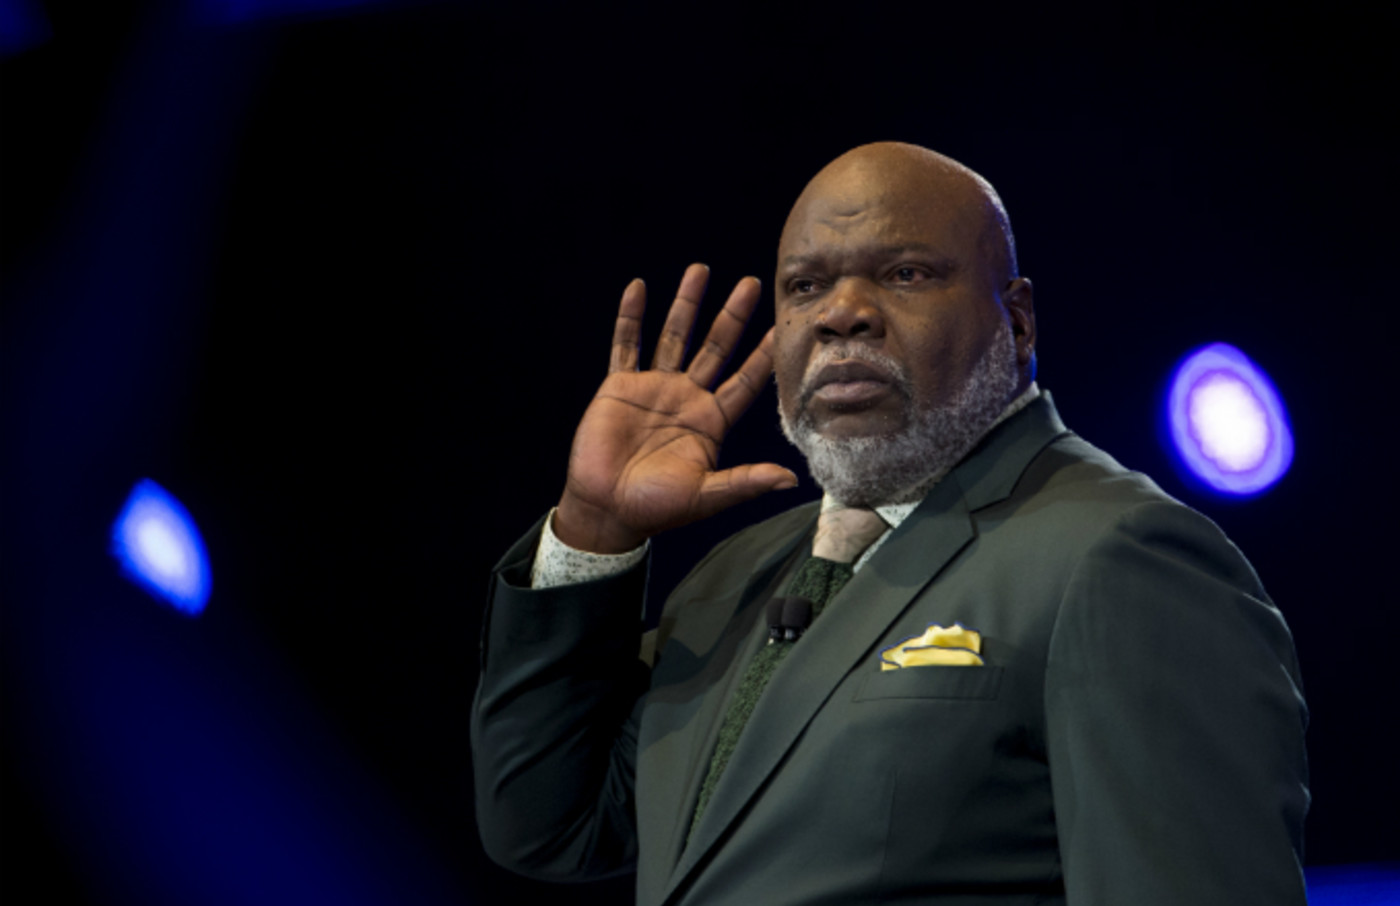 T.D. Jakes Roasted for Choice of Preaching Attire | Complex